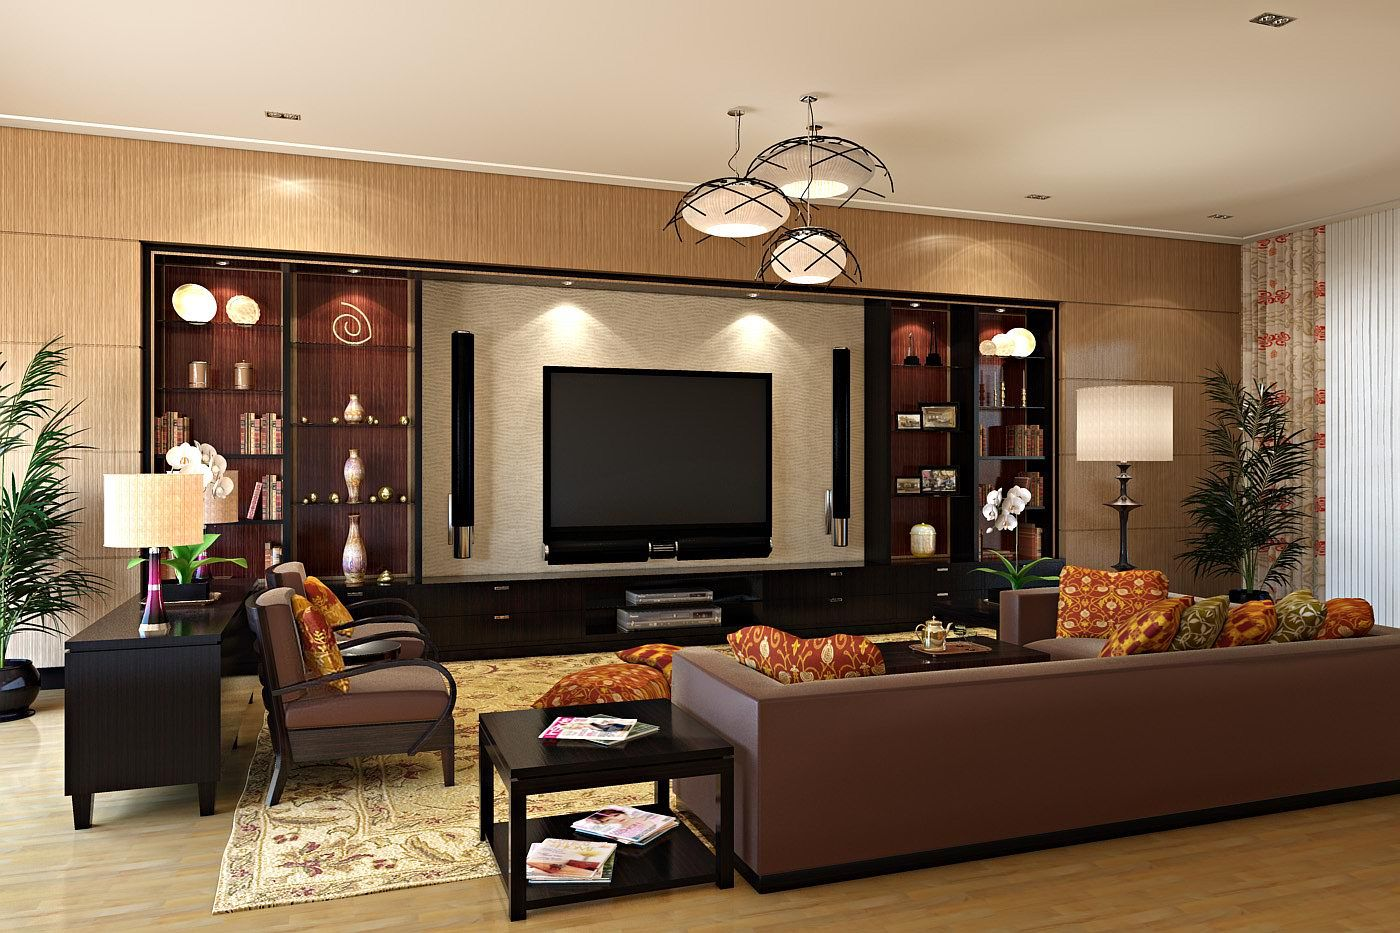 Oriental Interior Design Ideas Jpg 1400 933 Living Room Interior Home Interior Design Interior Design Living Room